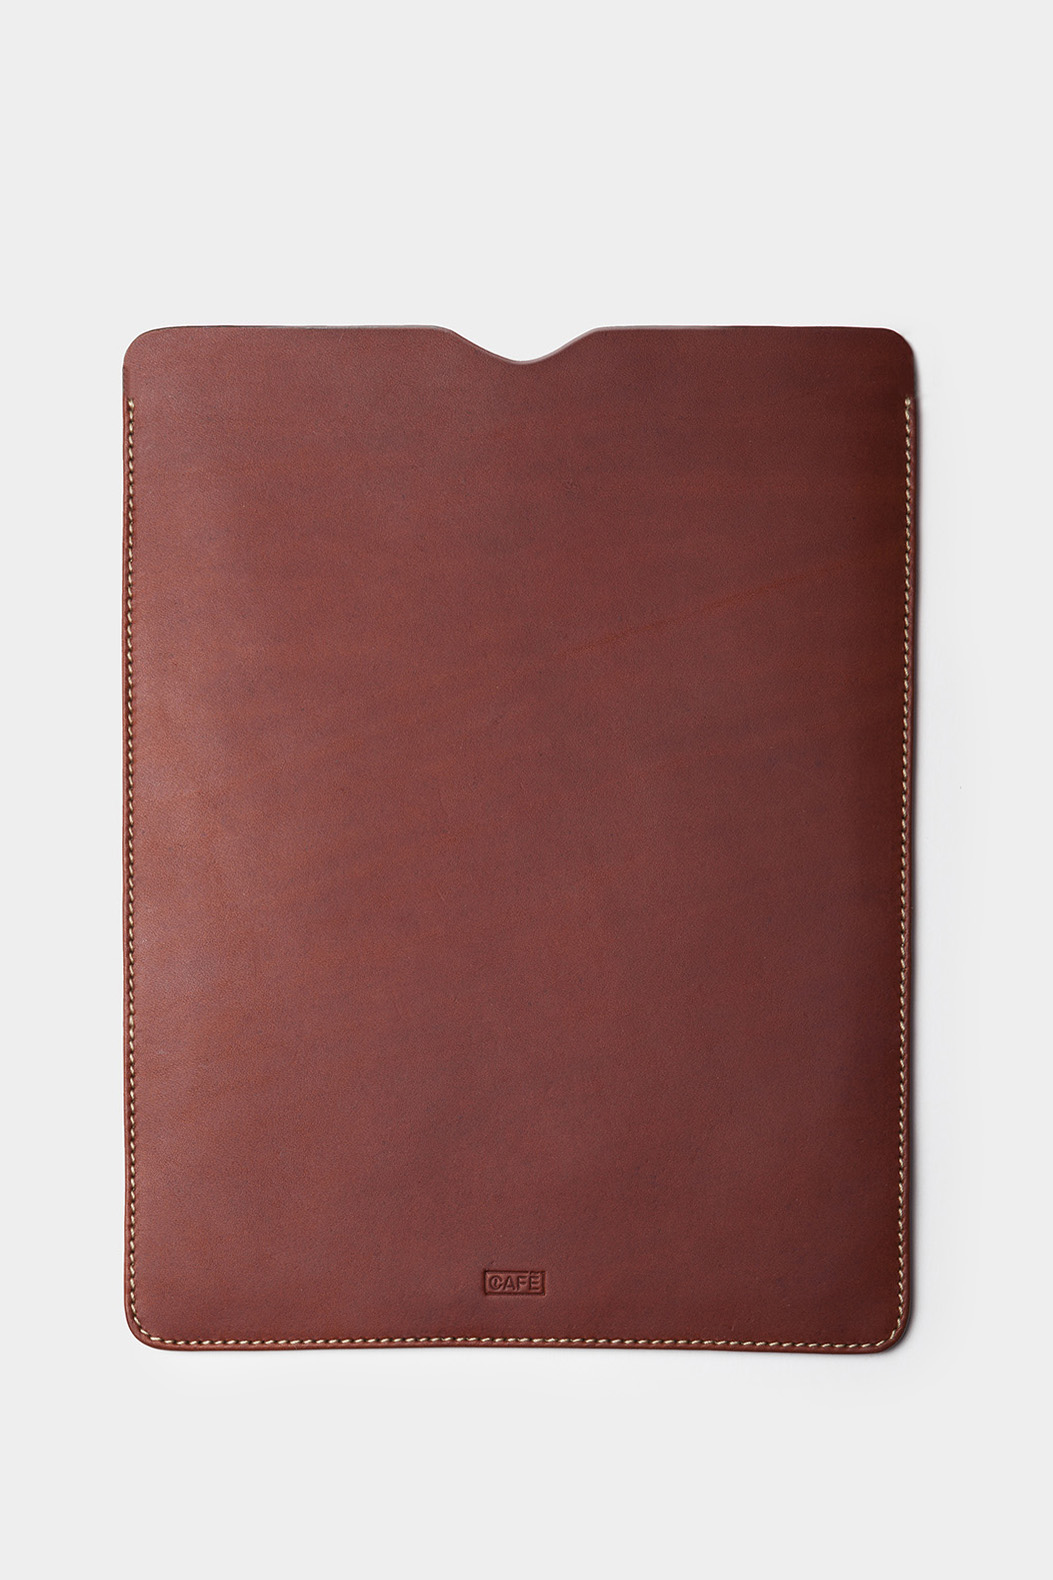 Vegetable Tanned Leather case